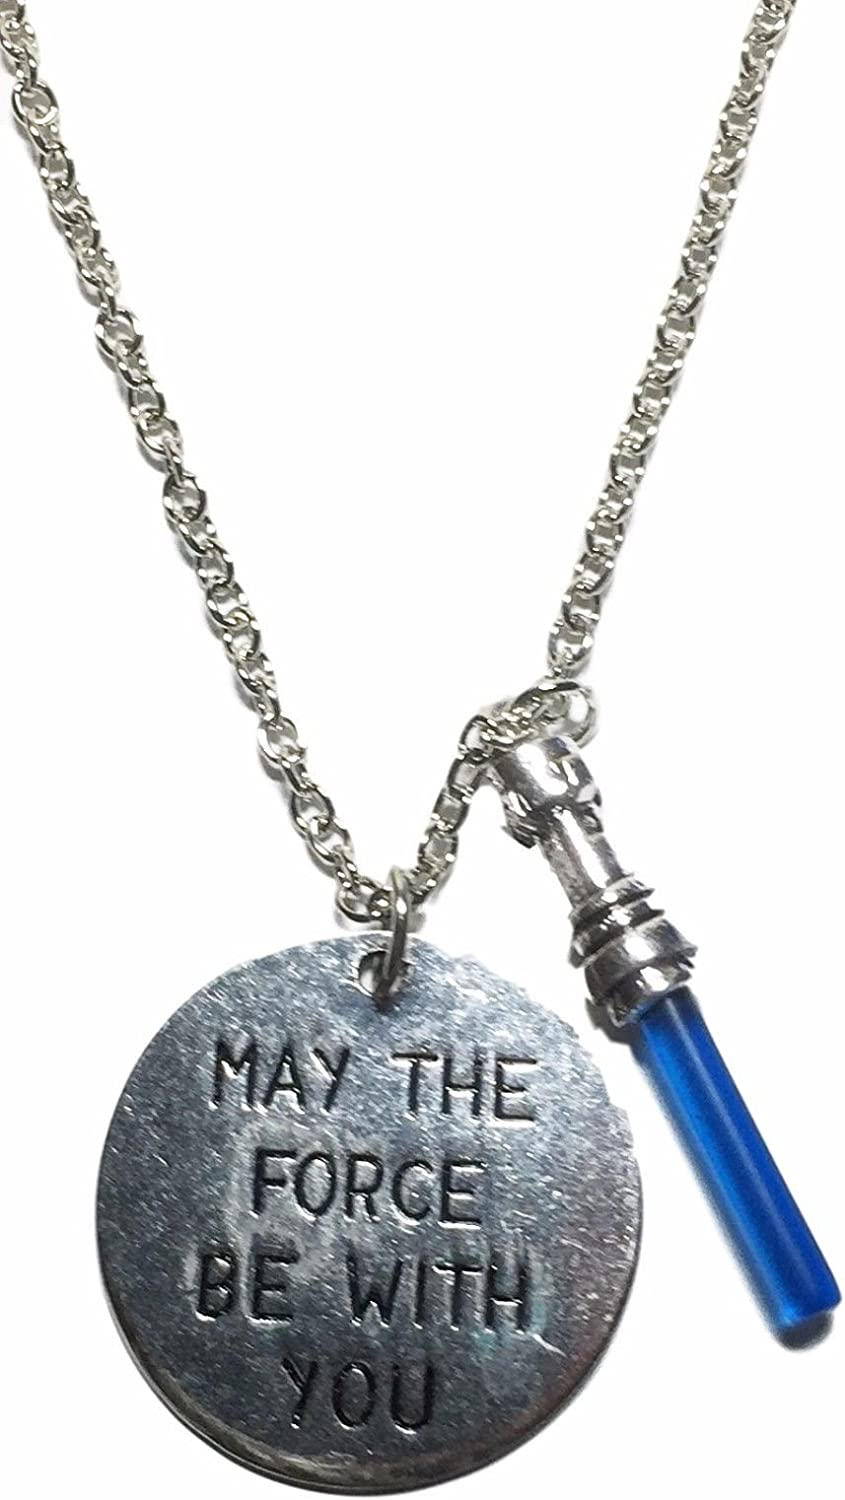 Star Wars Light Lightsaber /'May the Force By With You/' Charmed Vintage Necklace